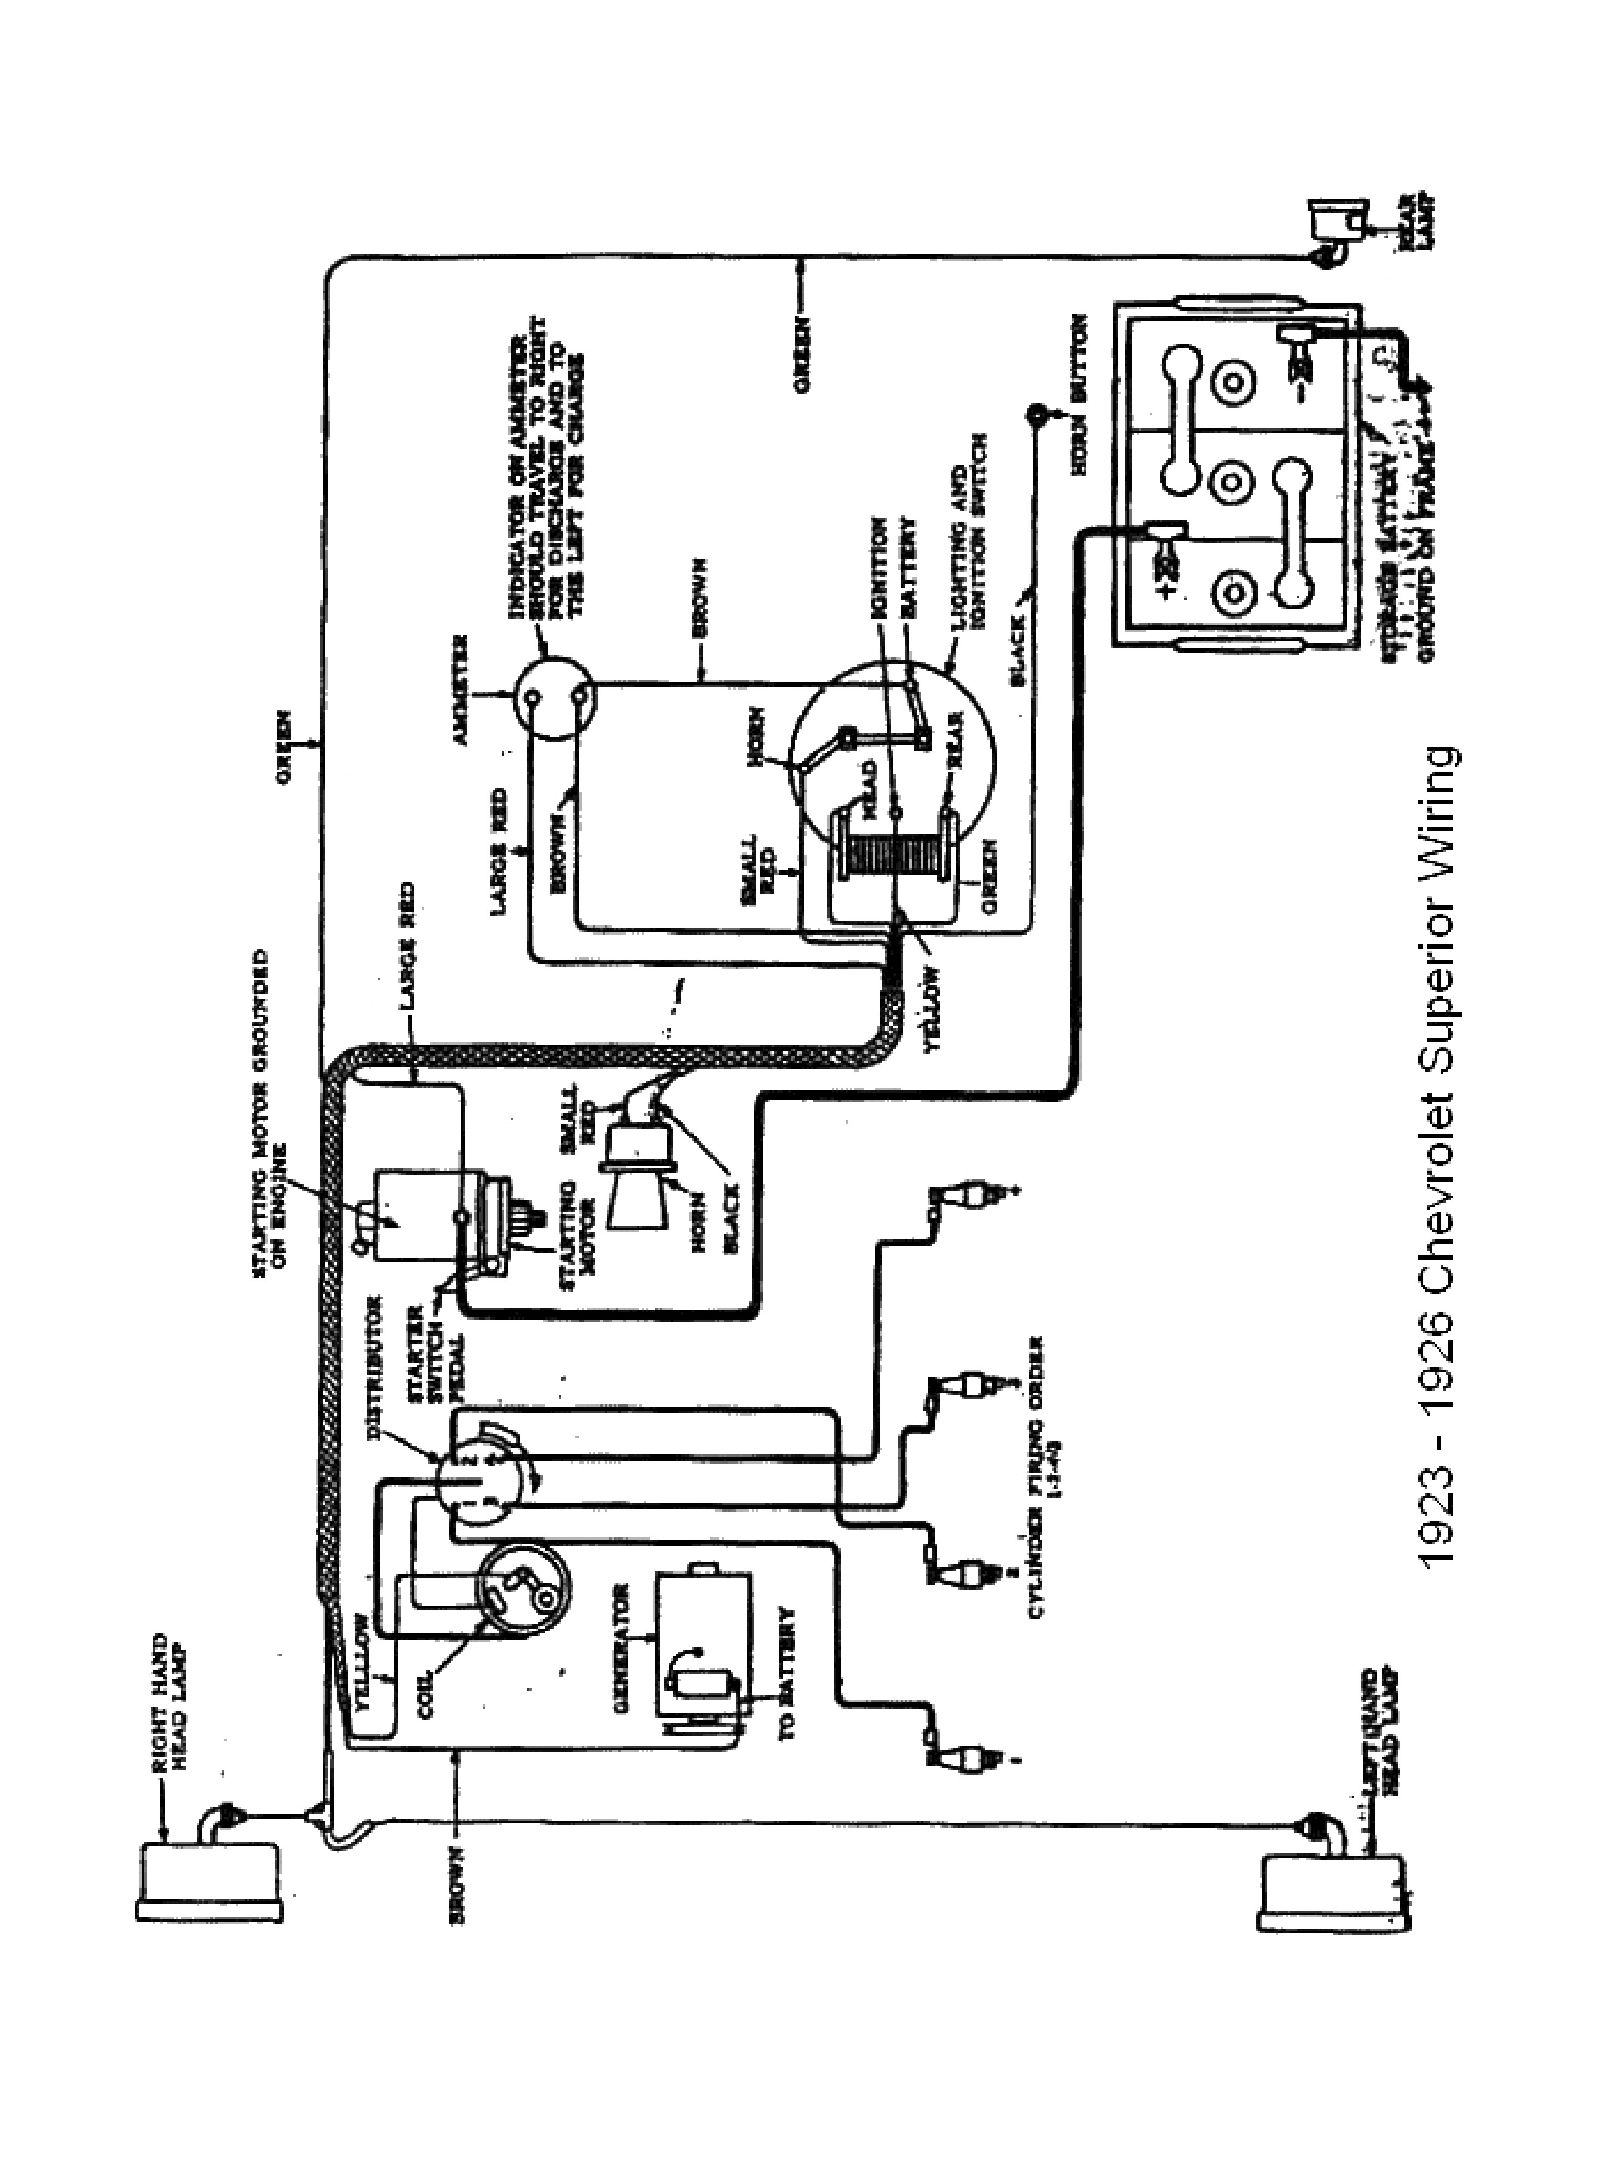 chevy wiring diagrams Painless Wiring Diagram Turn Signal and Brake 1923 superior model 1923 superior model